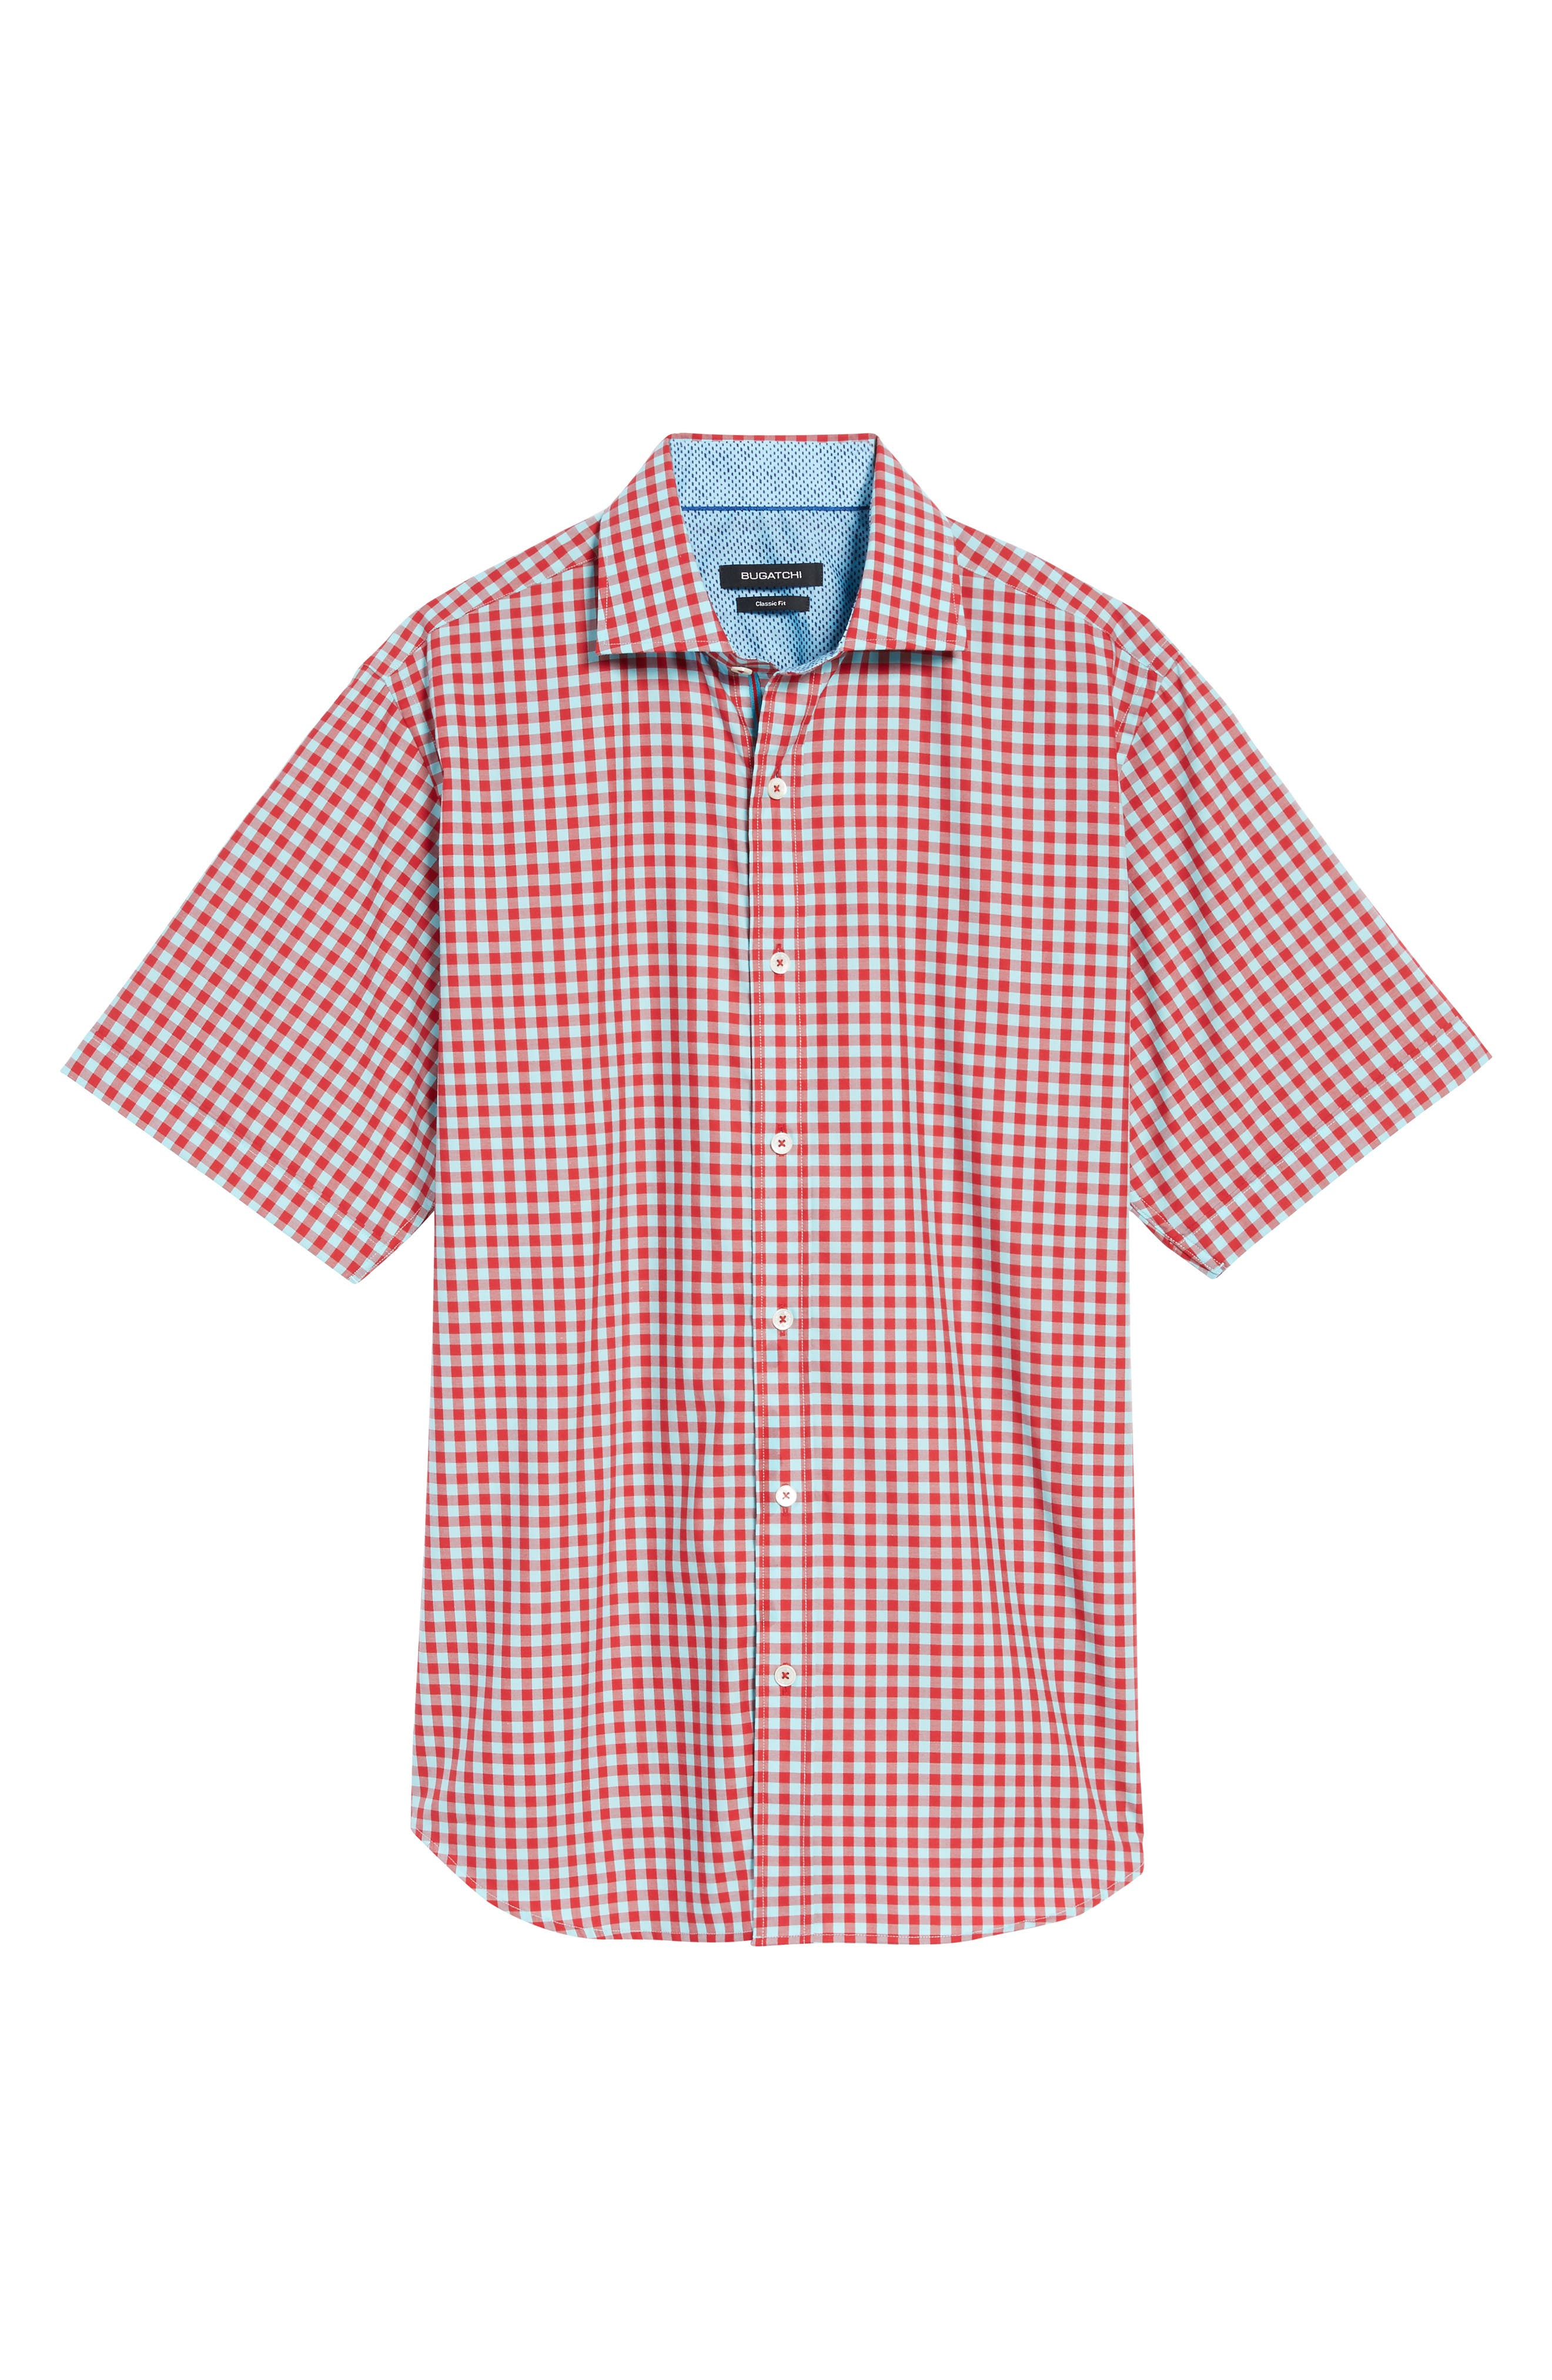 Classic Fit Gingham Short Sleeve Sport Shirt,                             Alternate thumbnail 6, color,                             Ruby